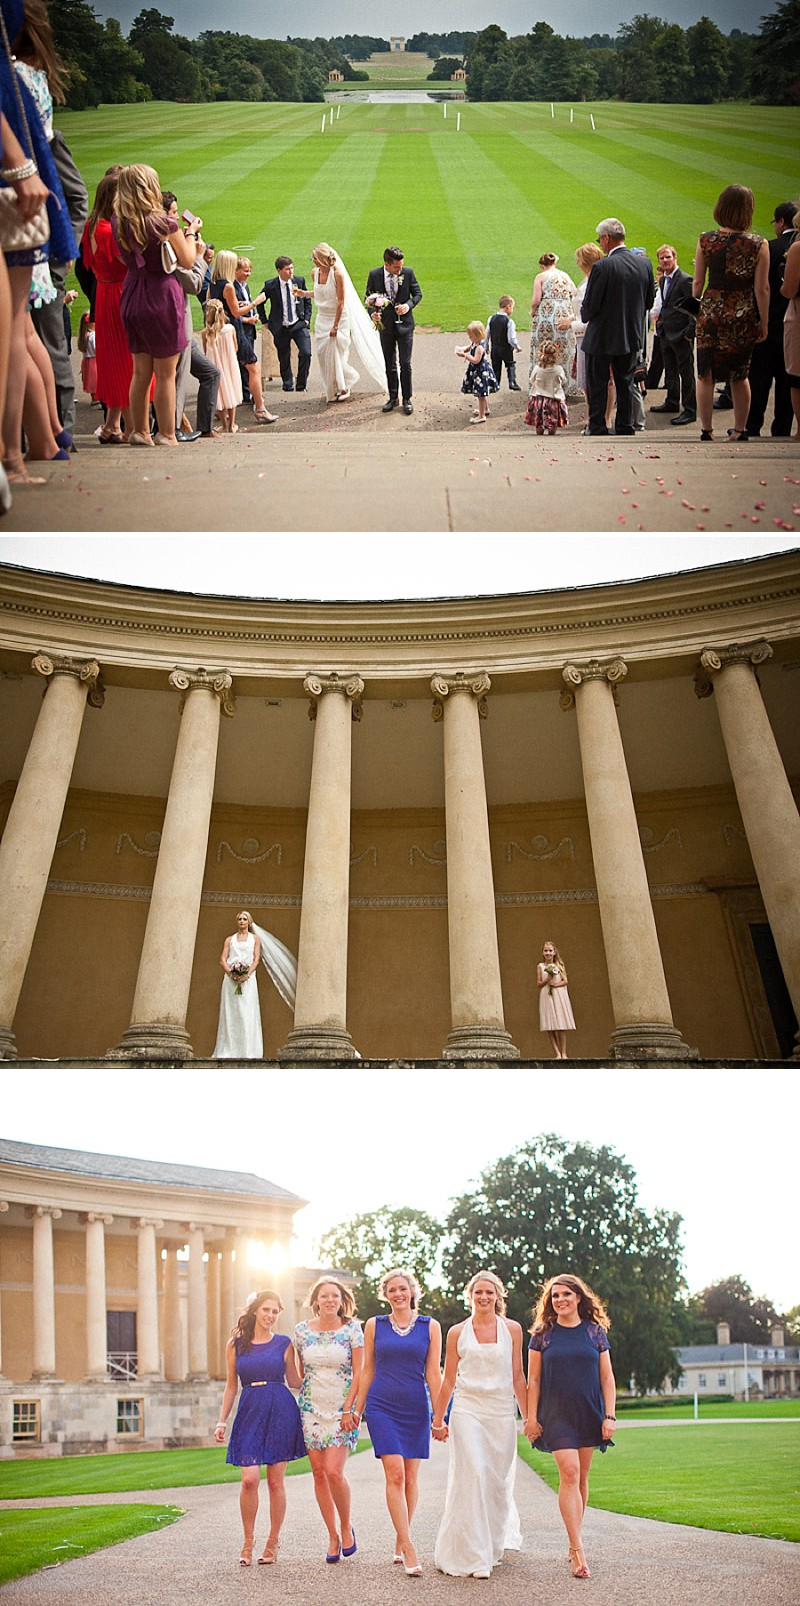 An Elegant Wedding At Stowe House In Buckinghamshire With Bride In Twenties Style Charlie Brear Gown And Groom In Suit By The Kooples Images From Matt Parry Photography_0007